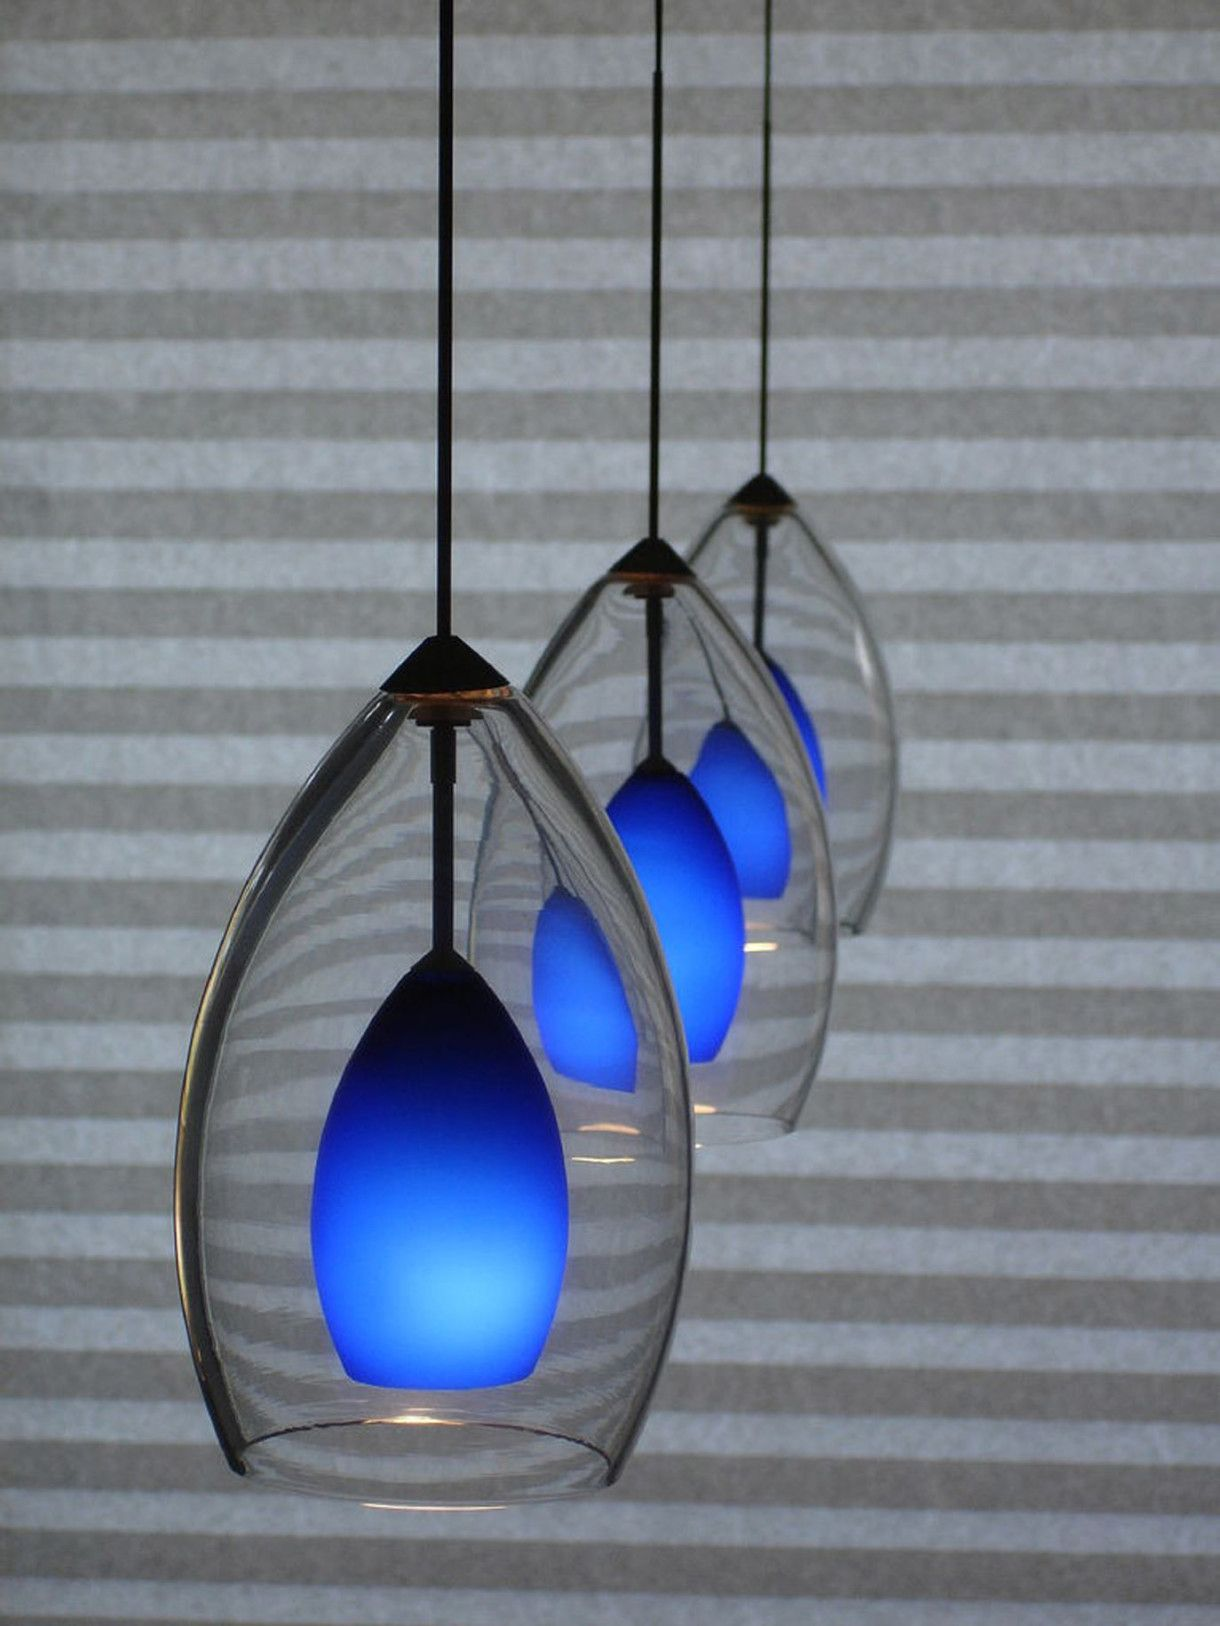 Elegant Blue Pendant Lamp Design Idea By David Hunter